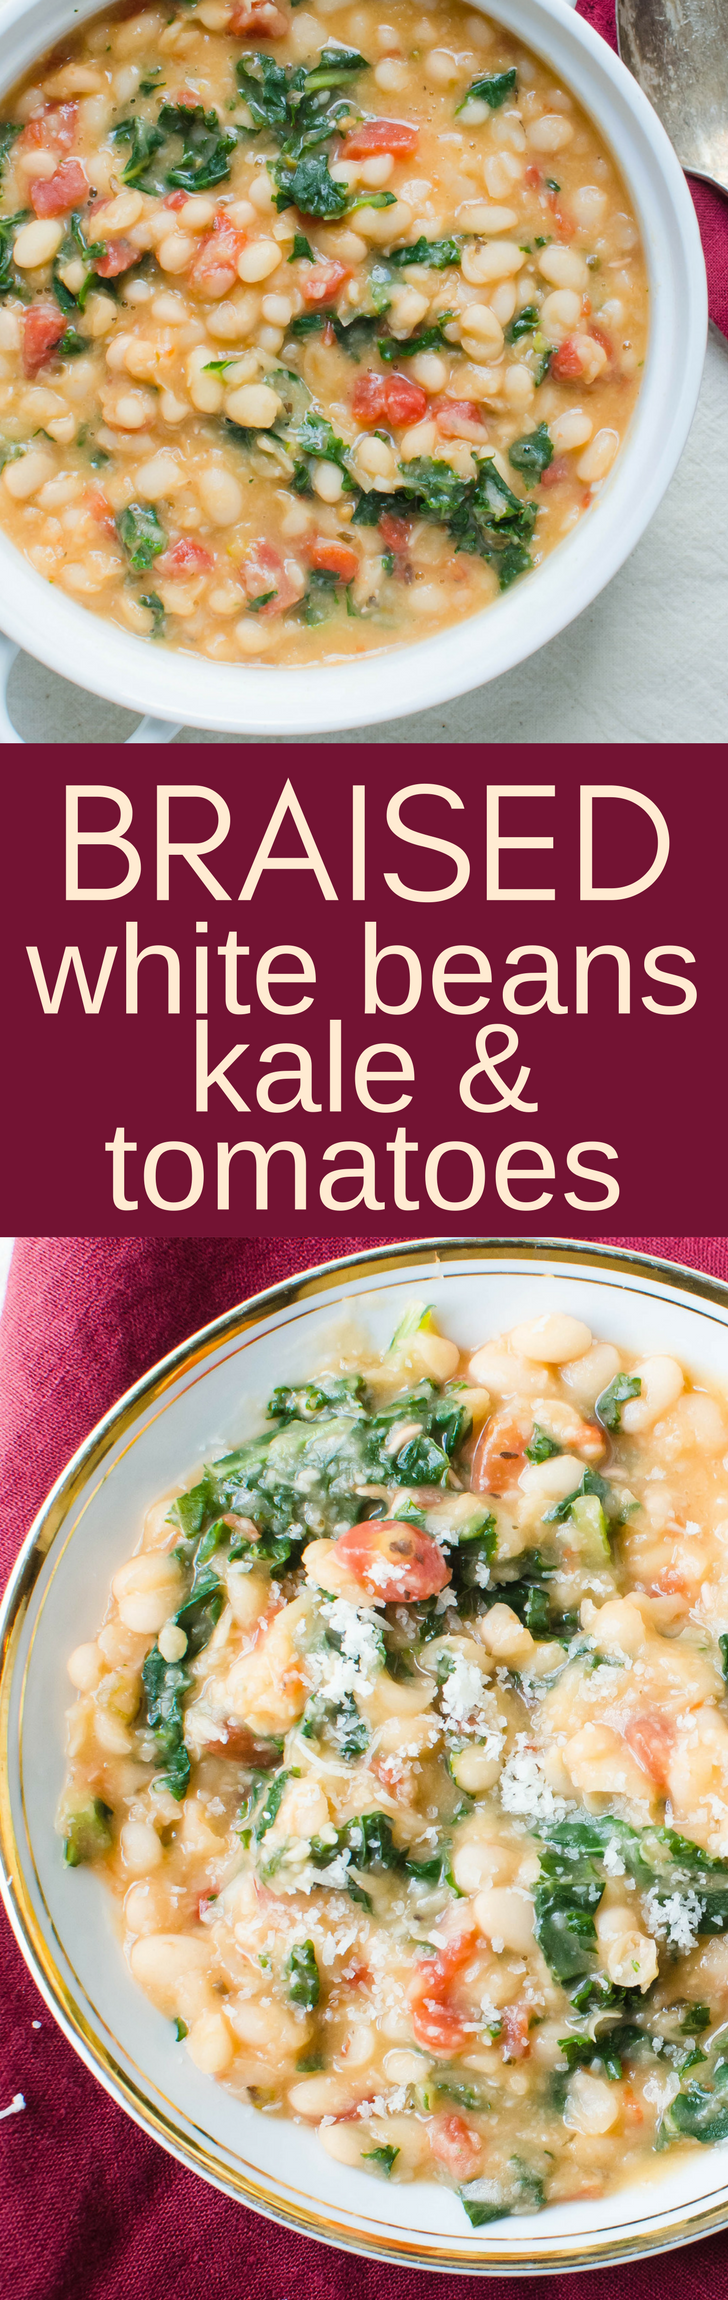 Braised Kale With White Beans And Tomato